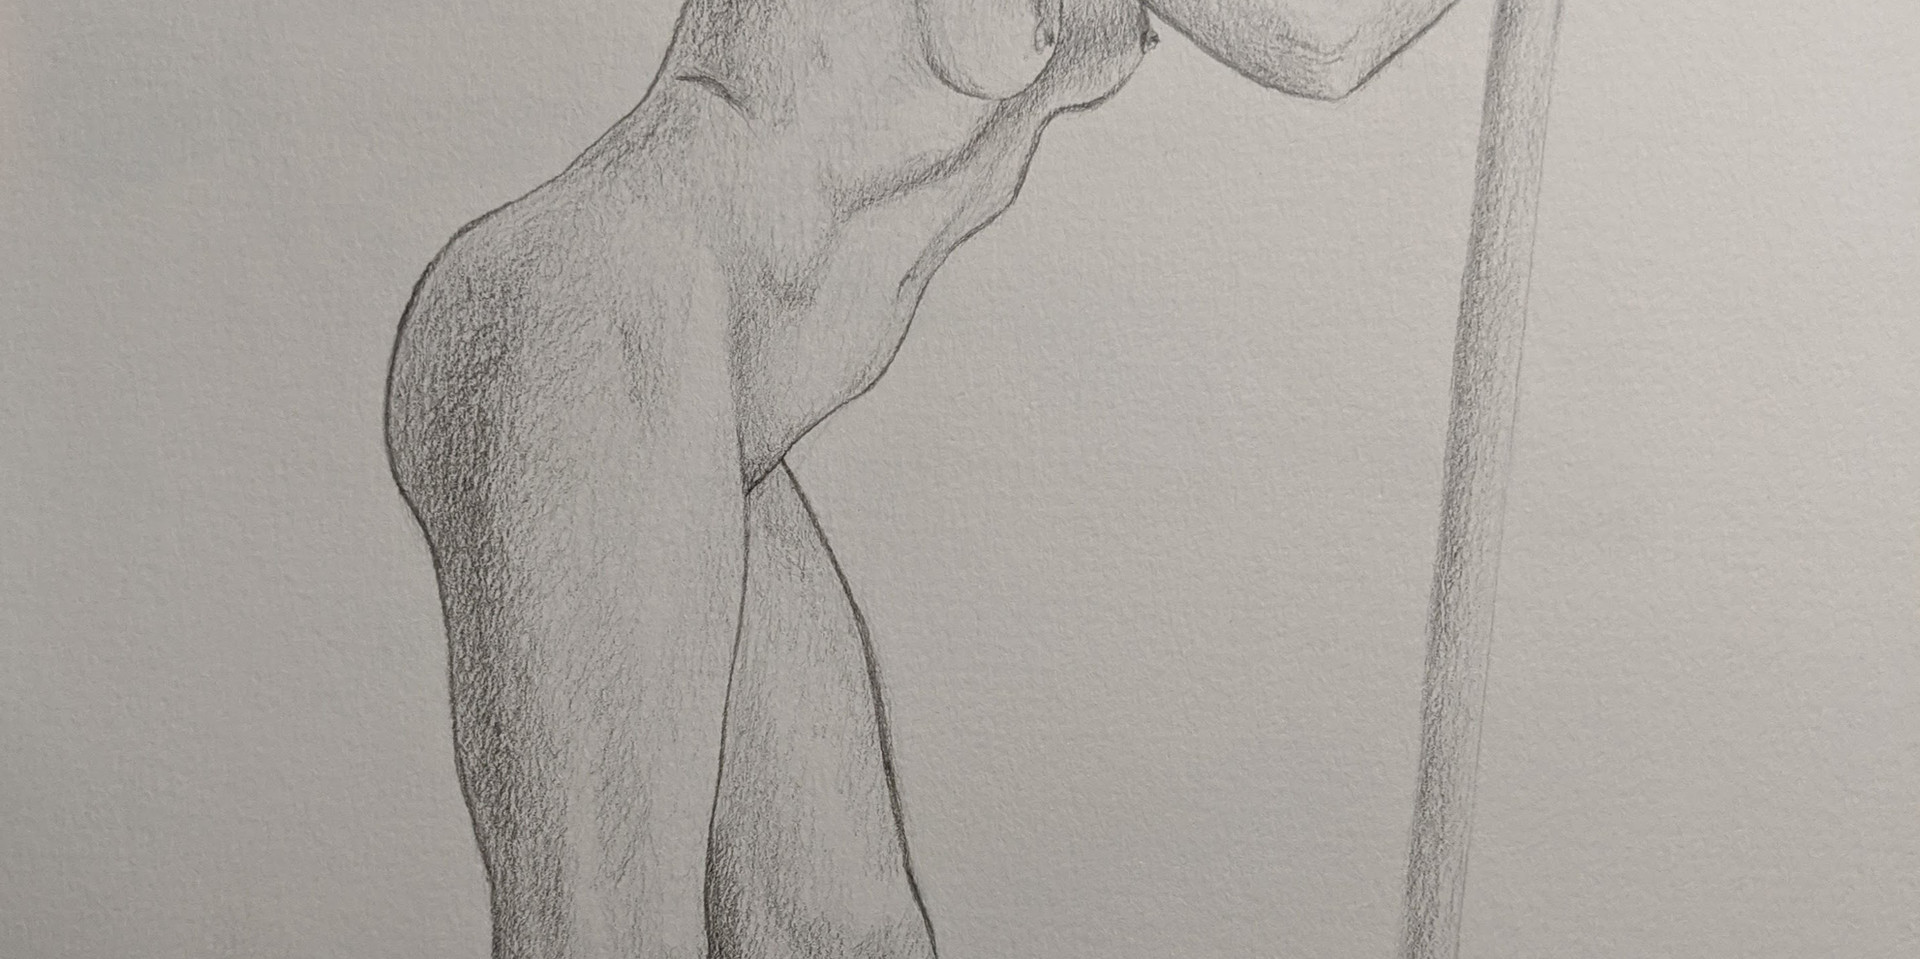 """Jenny Bowler, 2021 Graphite on paper 14""""x11""""  Drawing III Figure Drawing Contour Line Drawing Texas Tech University"""